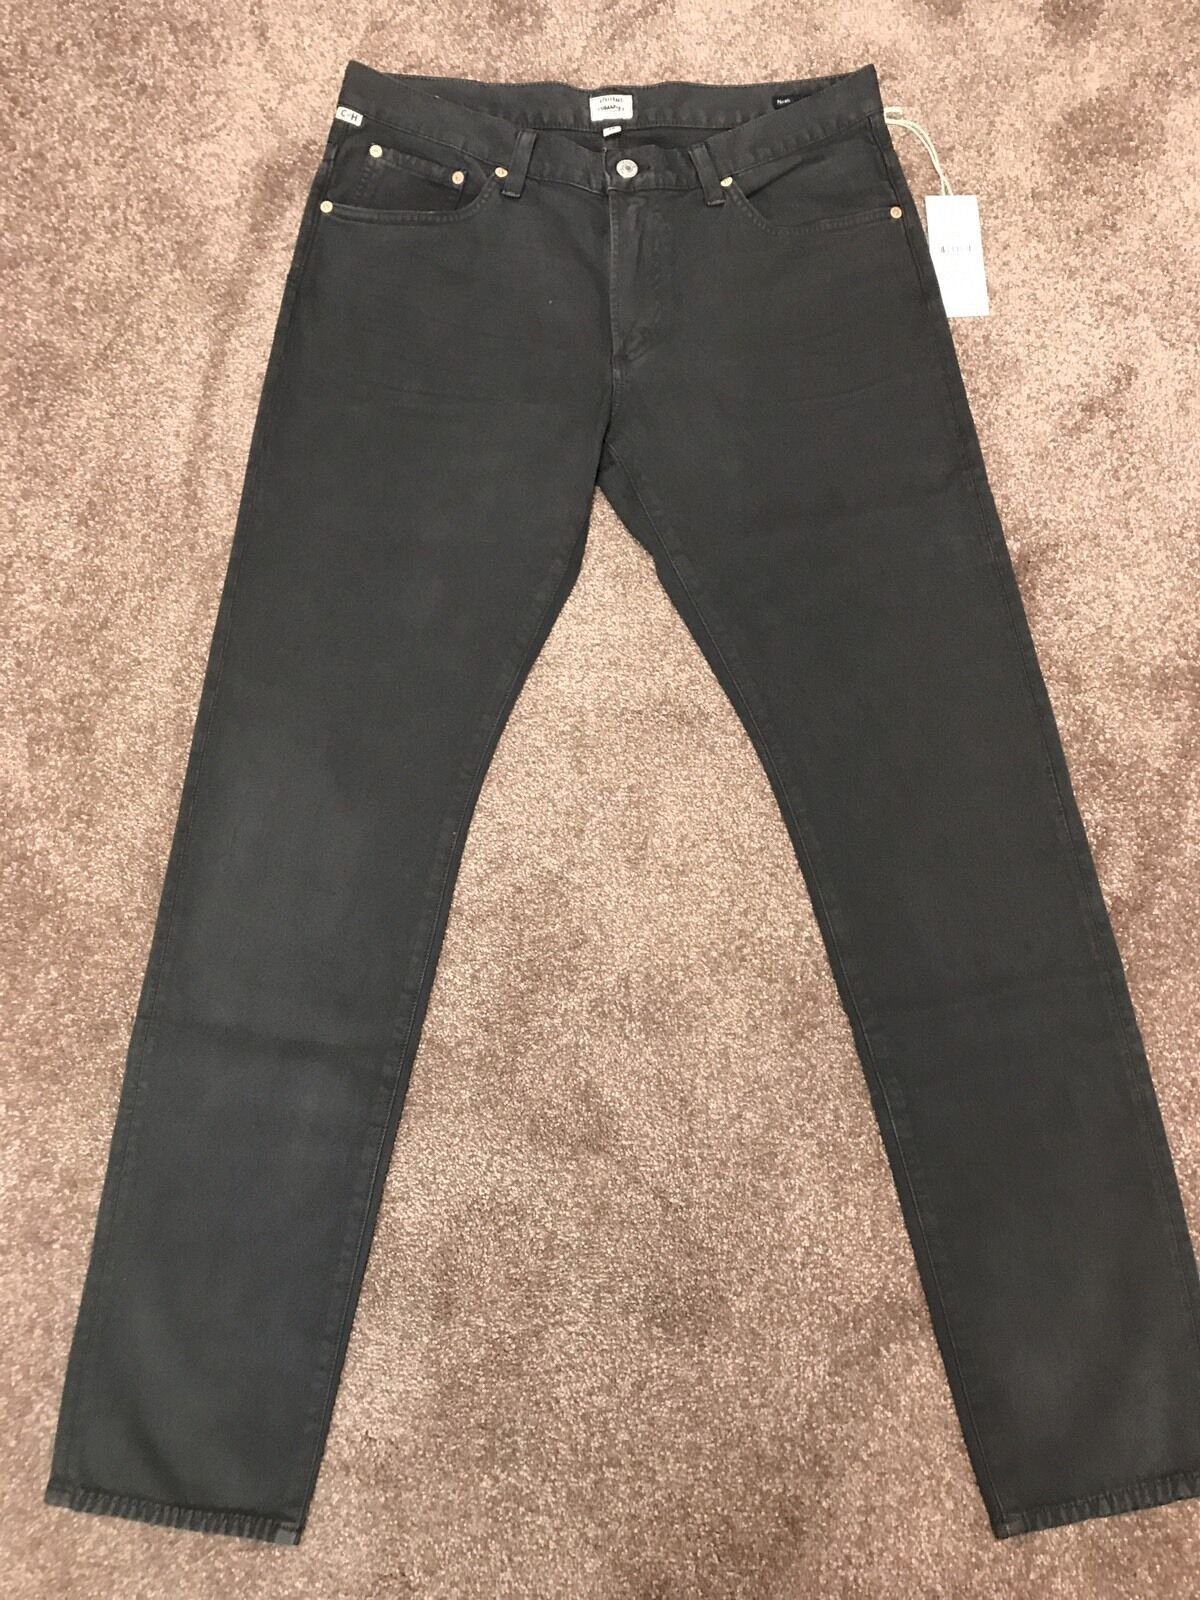 Citizens of Humanity Noah Skinny Anthracite jeans Größe 34 BNWT